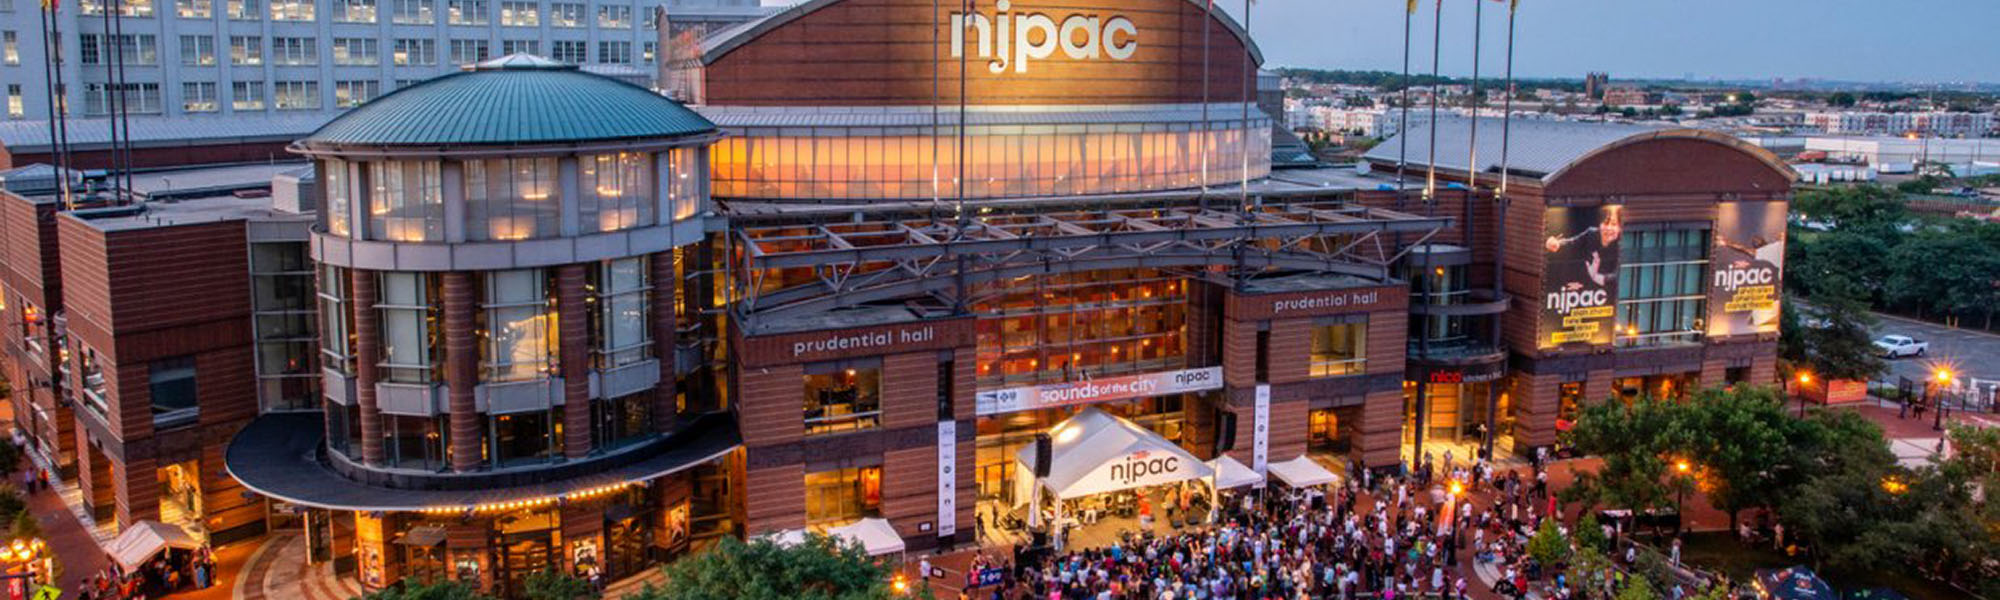 Photo of NJPAC in Newark, NJ